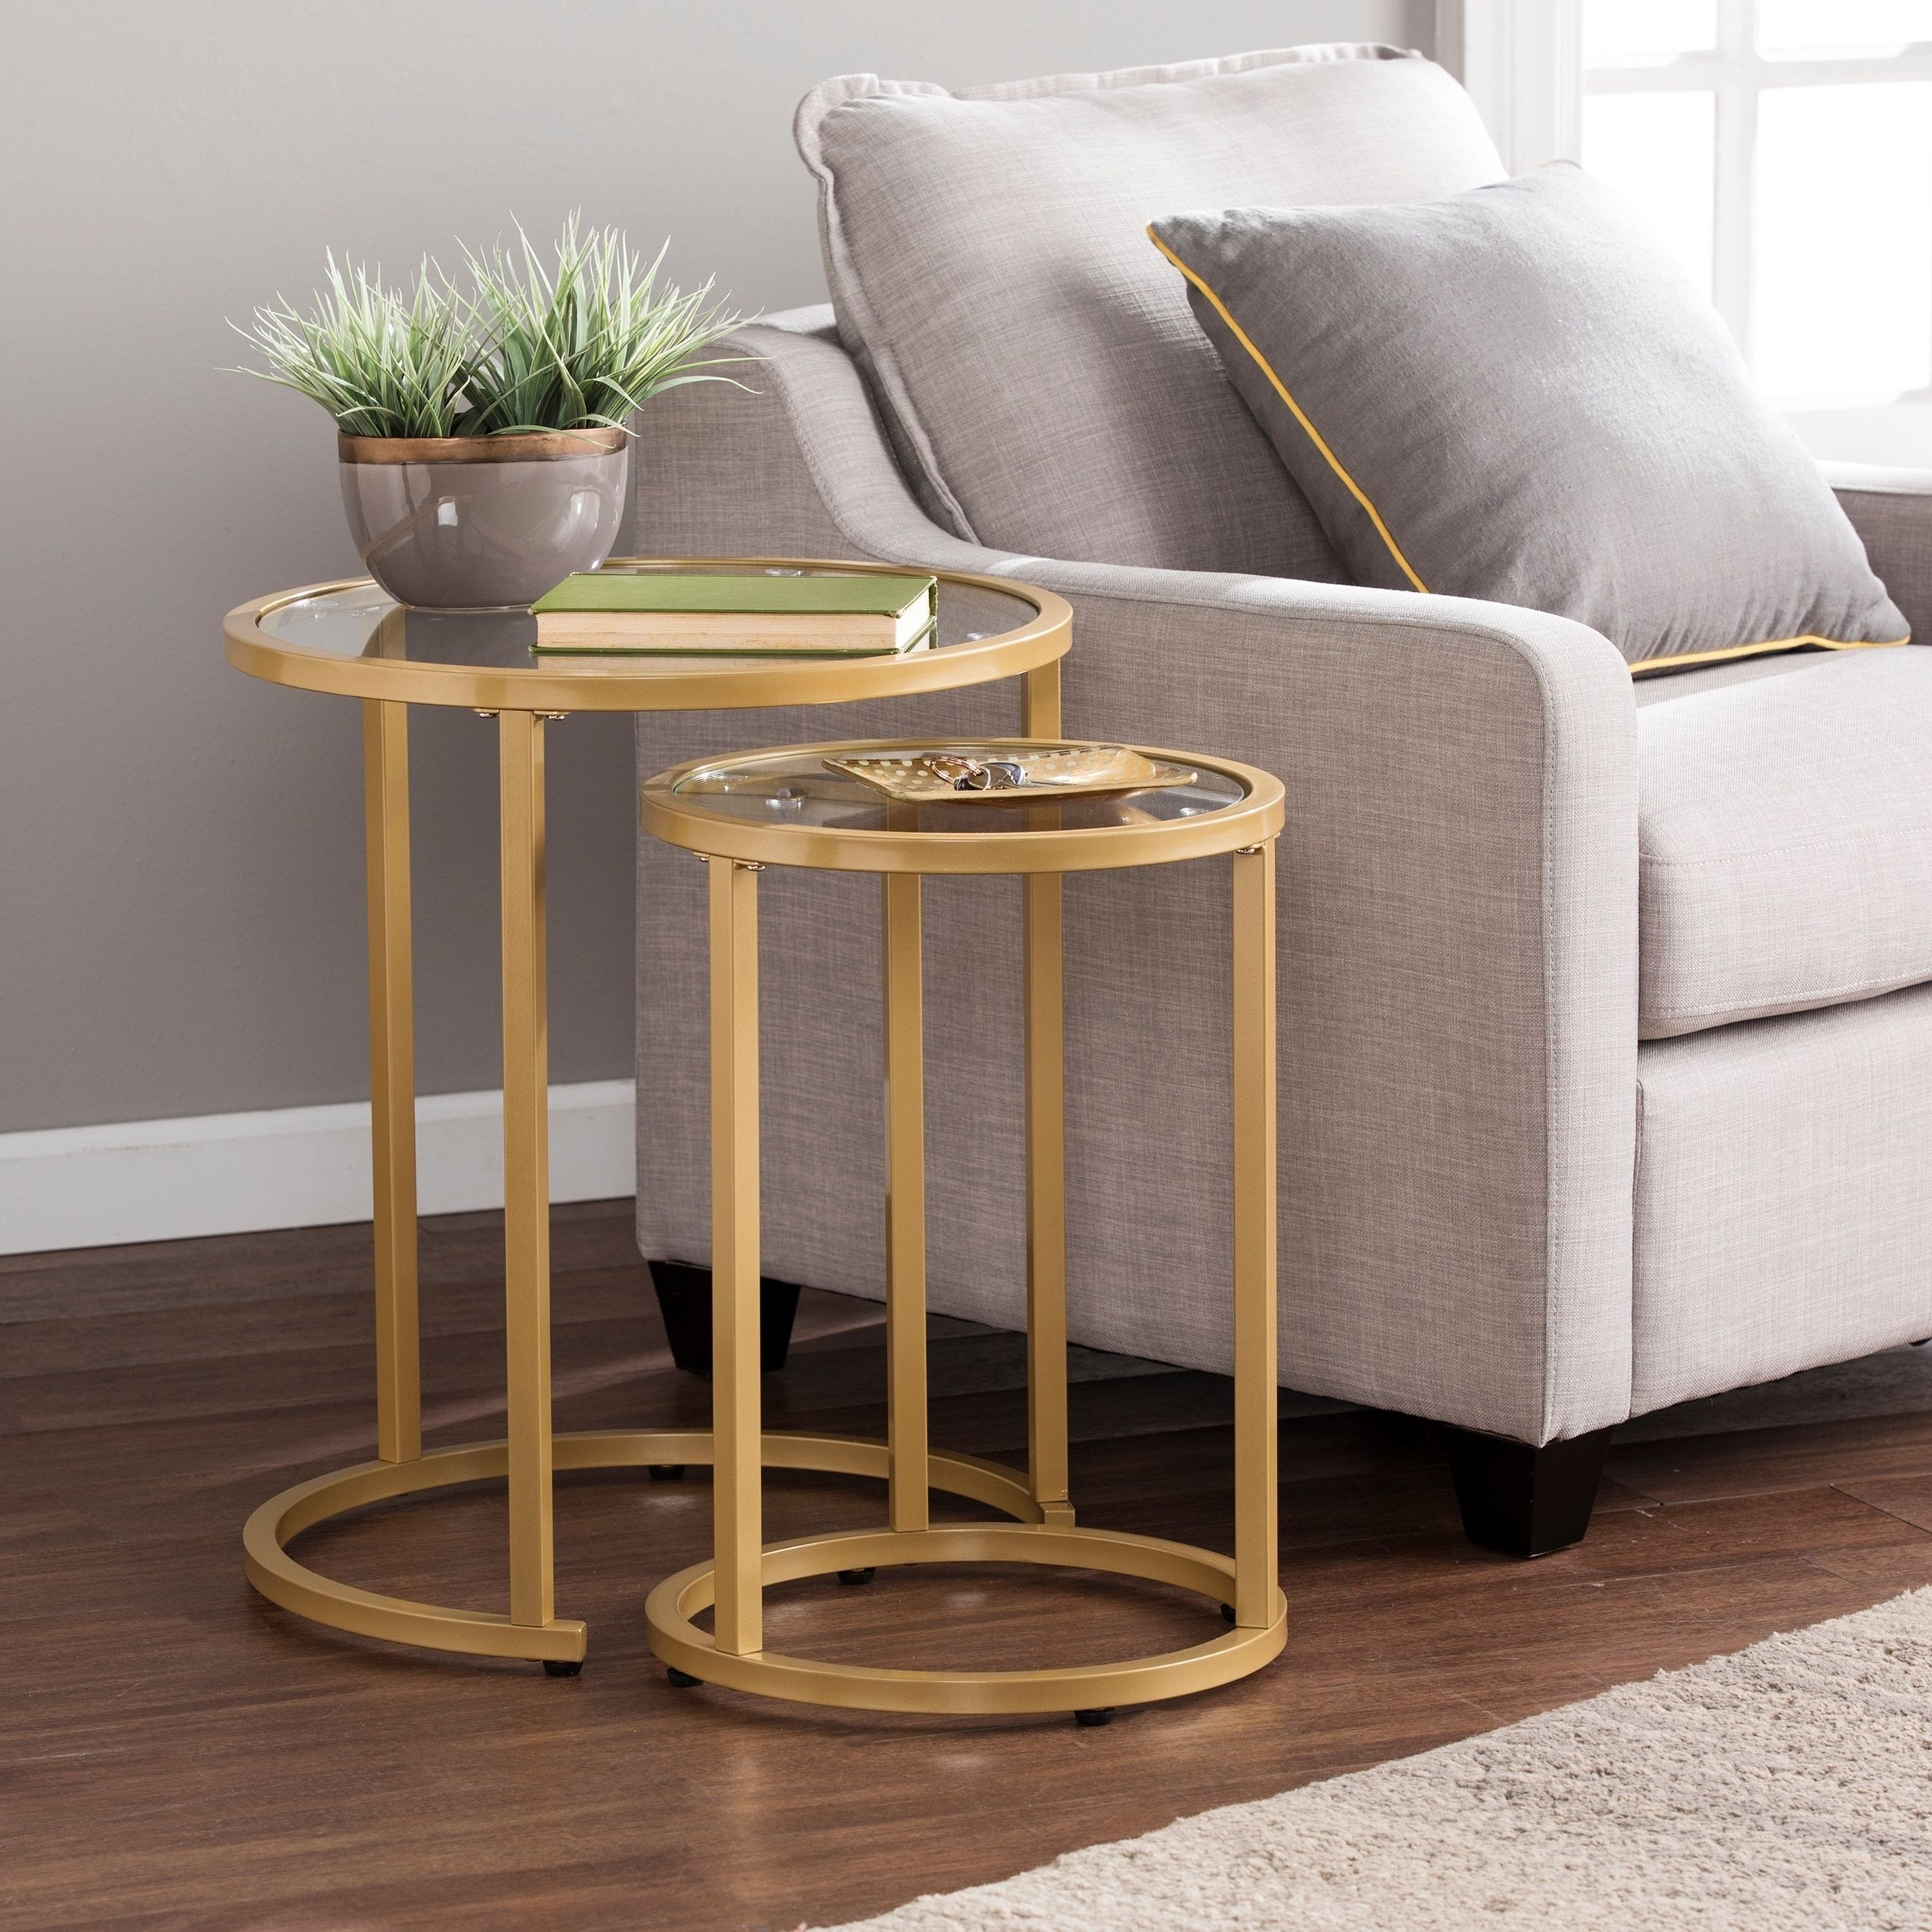 Silver Orchid Grant Glam Nesting Side Table 2pc Set – Gold Pertaining To 2019 Silver Orchid Henderson Faux Stone Round End Tables (View 17 of 20)